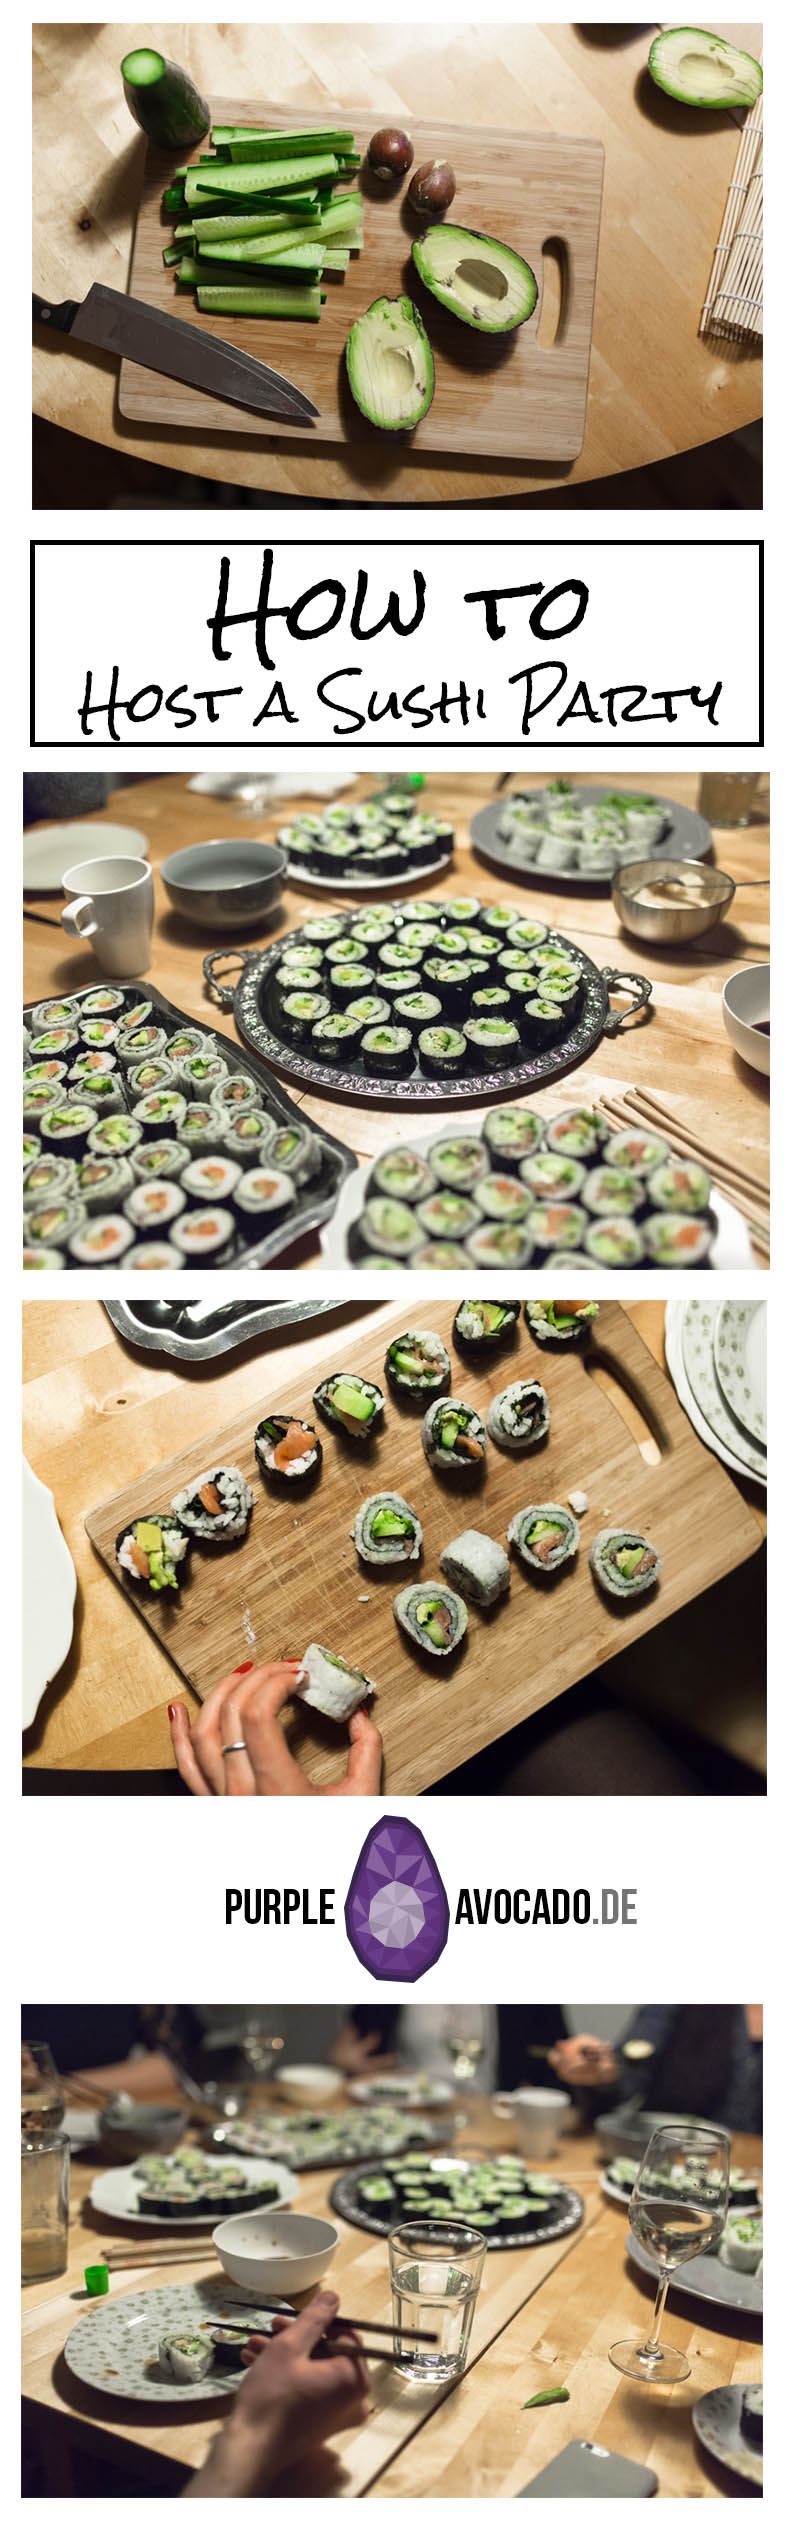 Want to host a Sushi Party but don't know how? Here's a handy guide with everything you need to know in order to plan a stress free and fun Sushi Evening with your friends.